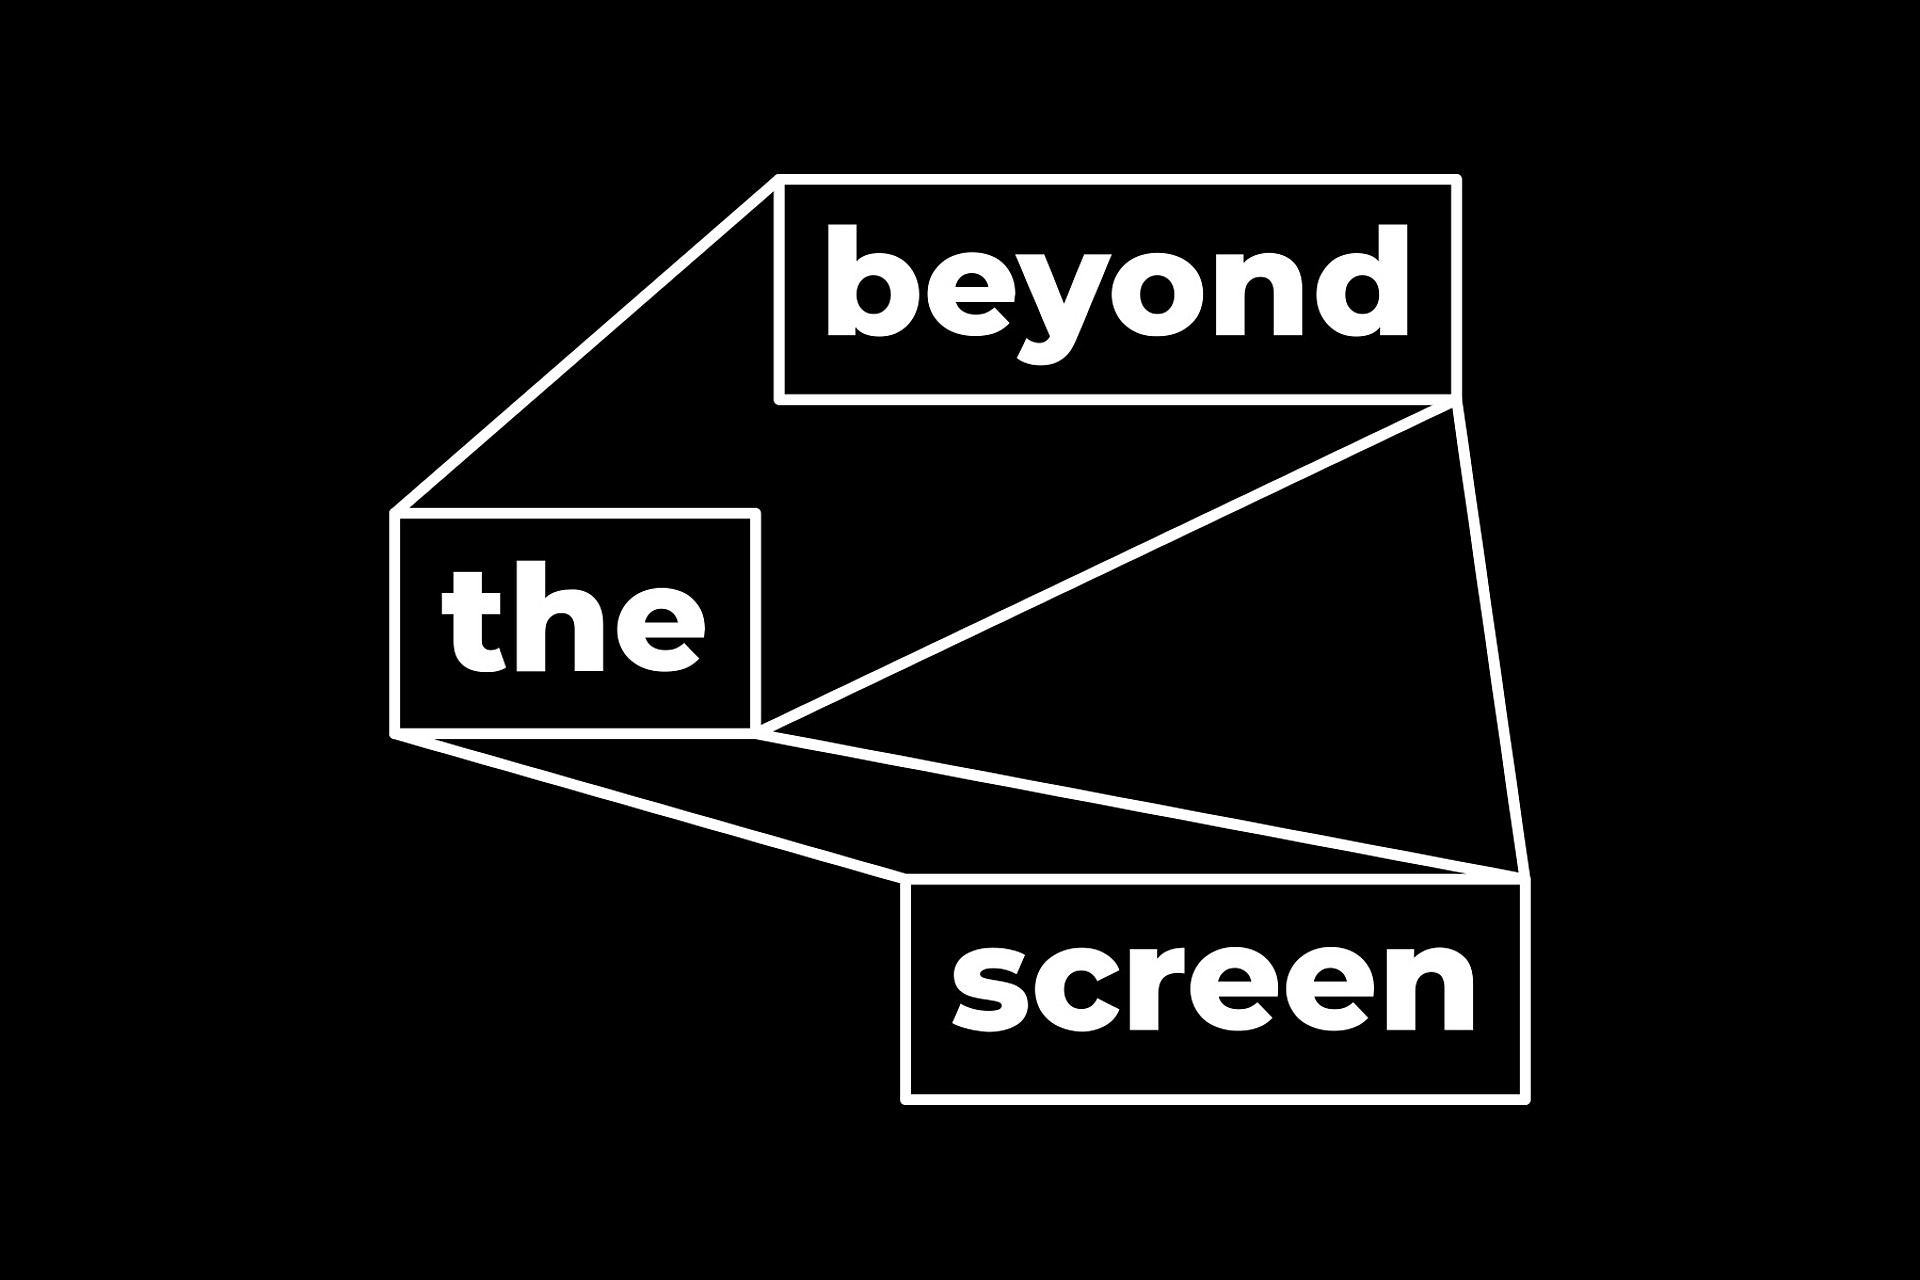 beyond-the-screen